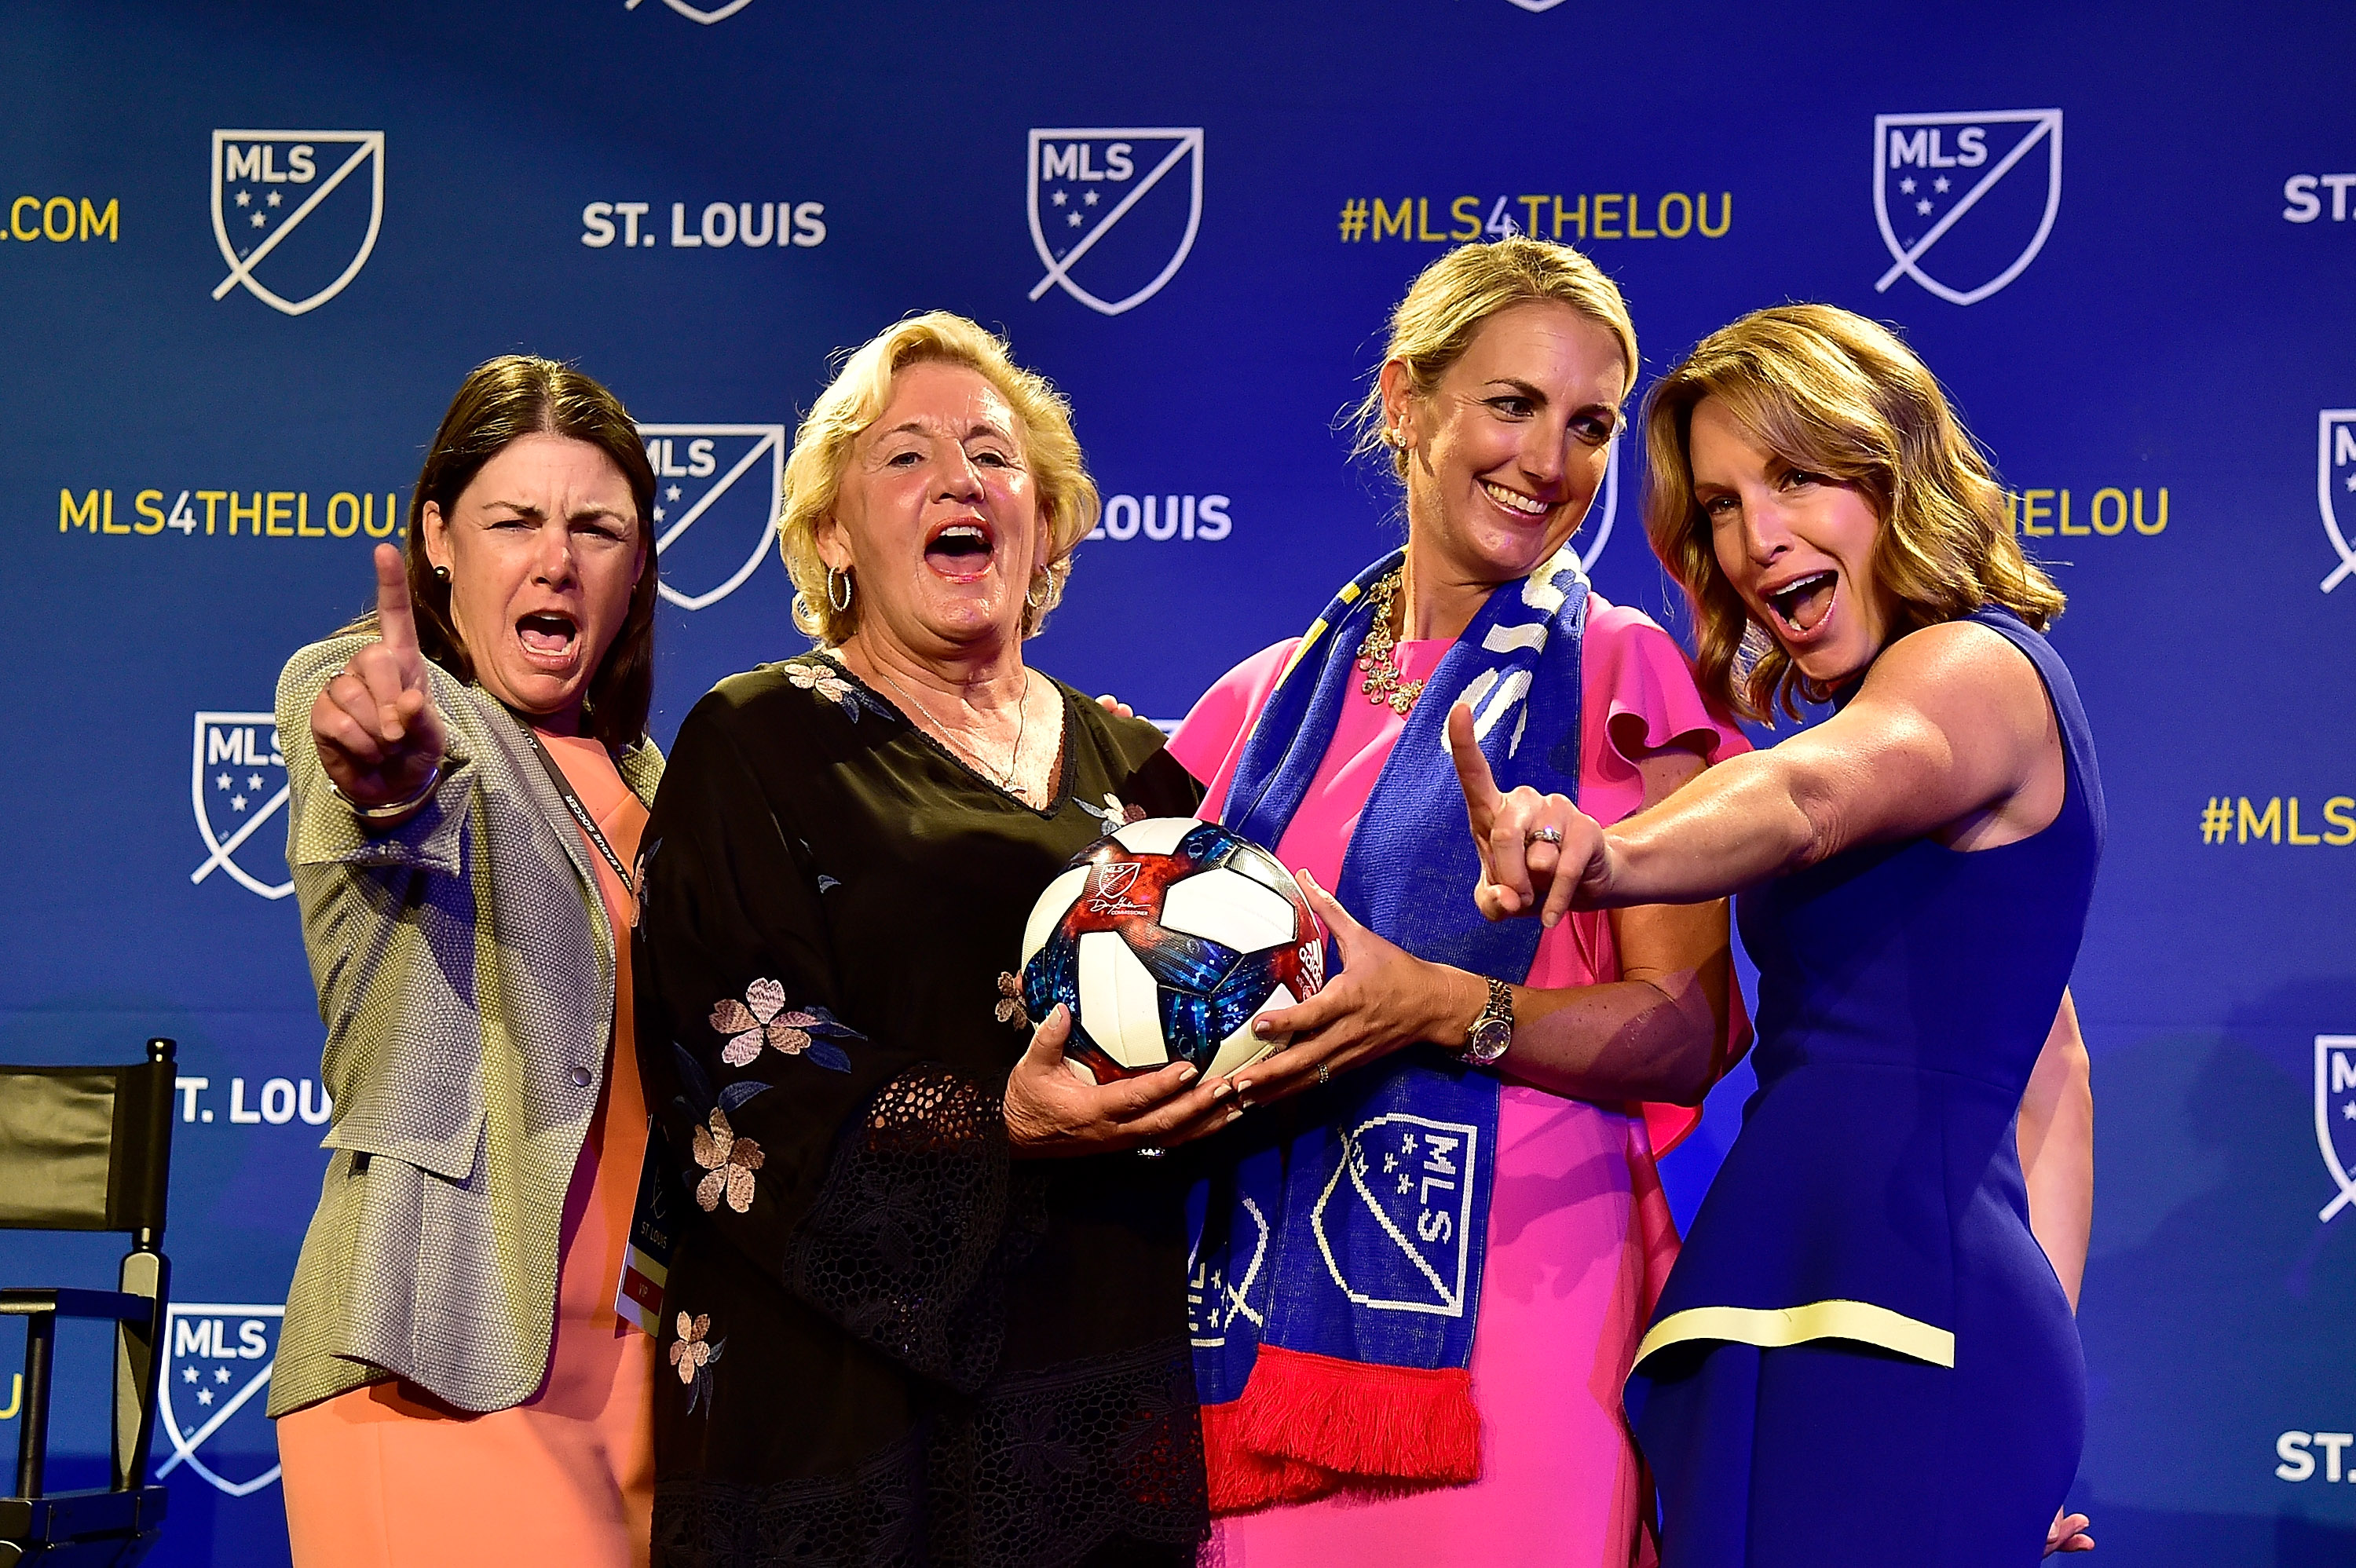 MLS: MLS4TheLou-St. Louis Press Conference